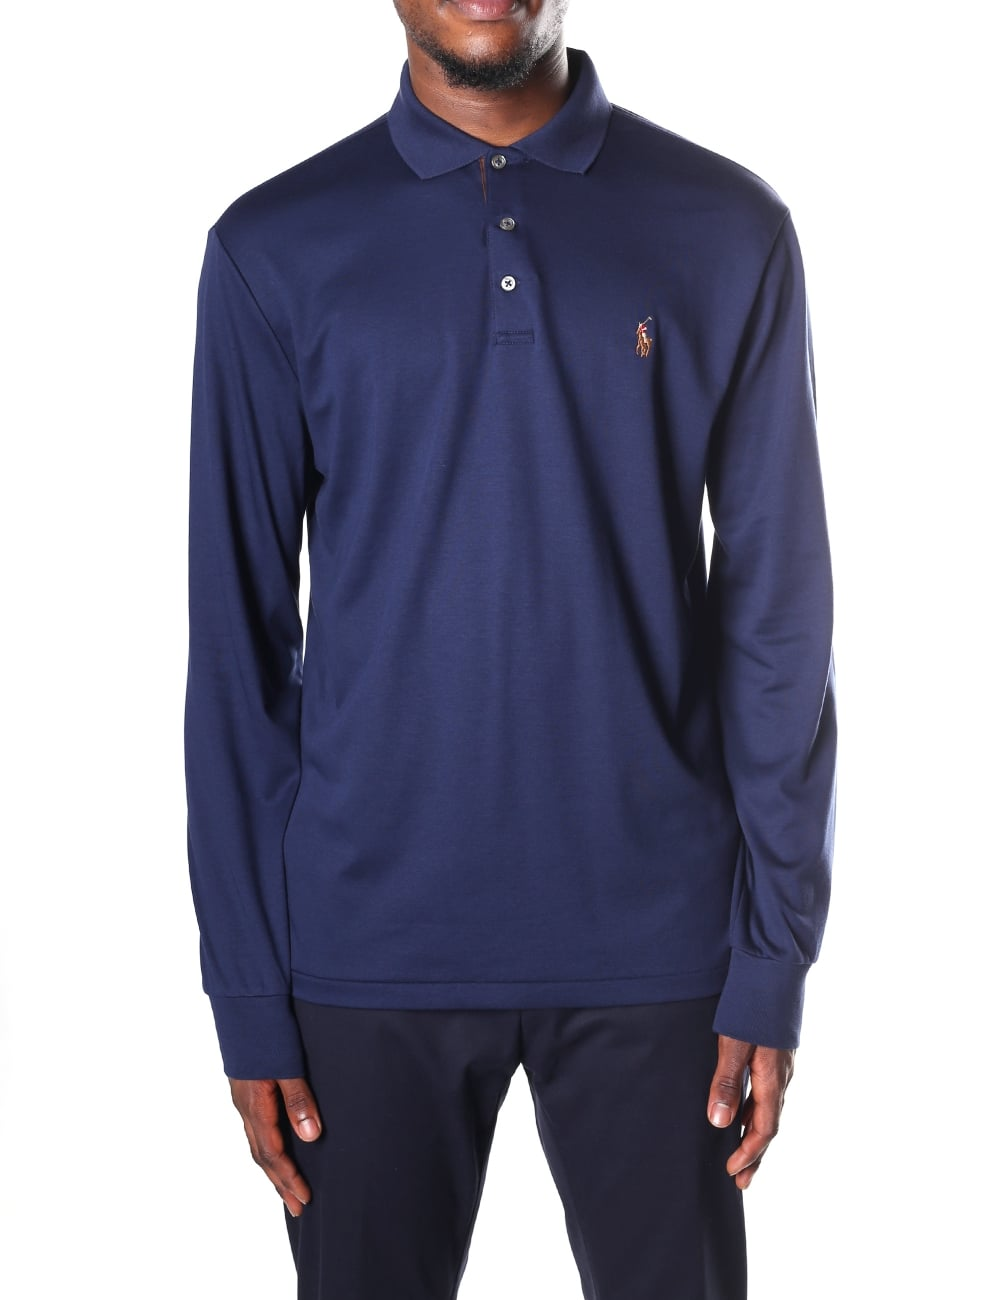 c894ed797a6f Polo Ralph Lauren Men's Custom Slim Fit Long Sleeve Polo Top